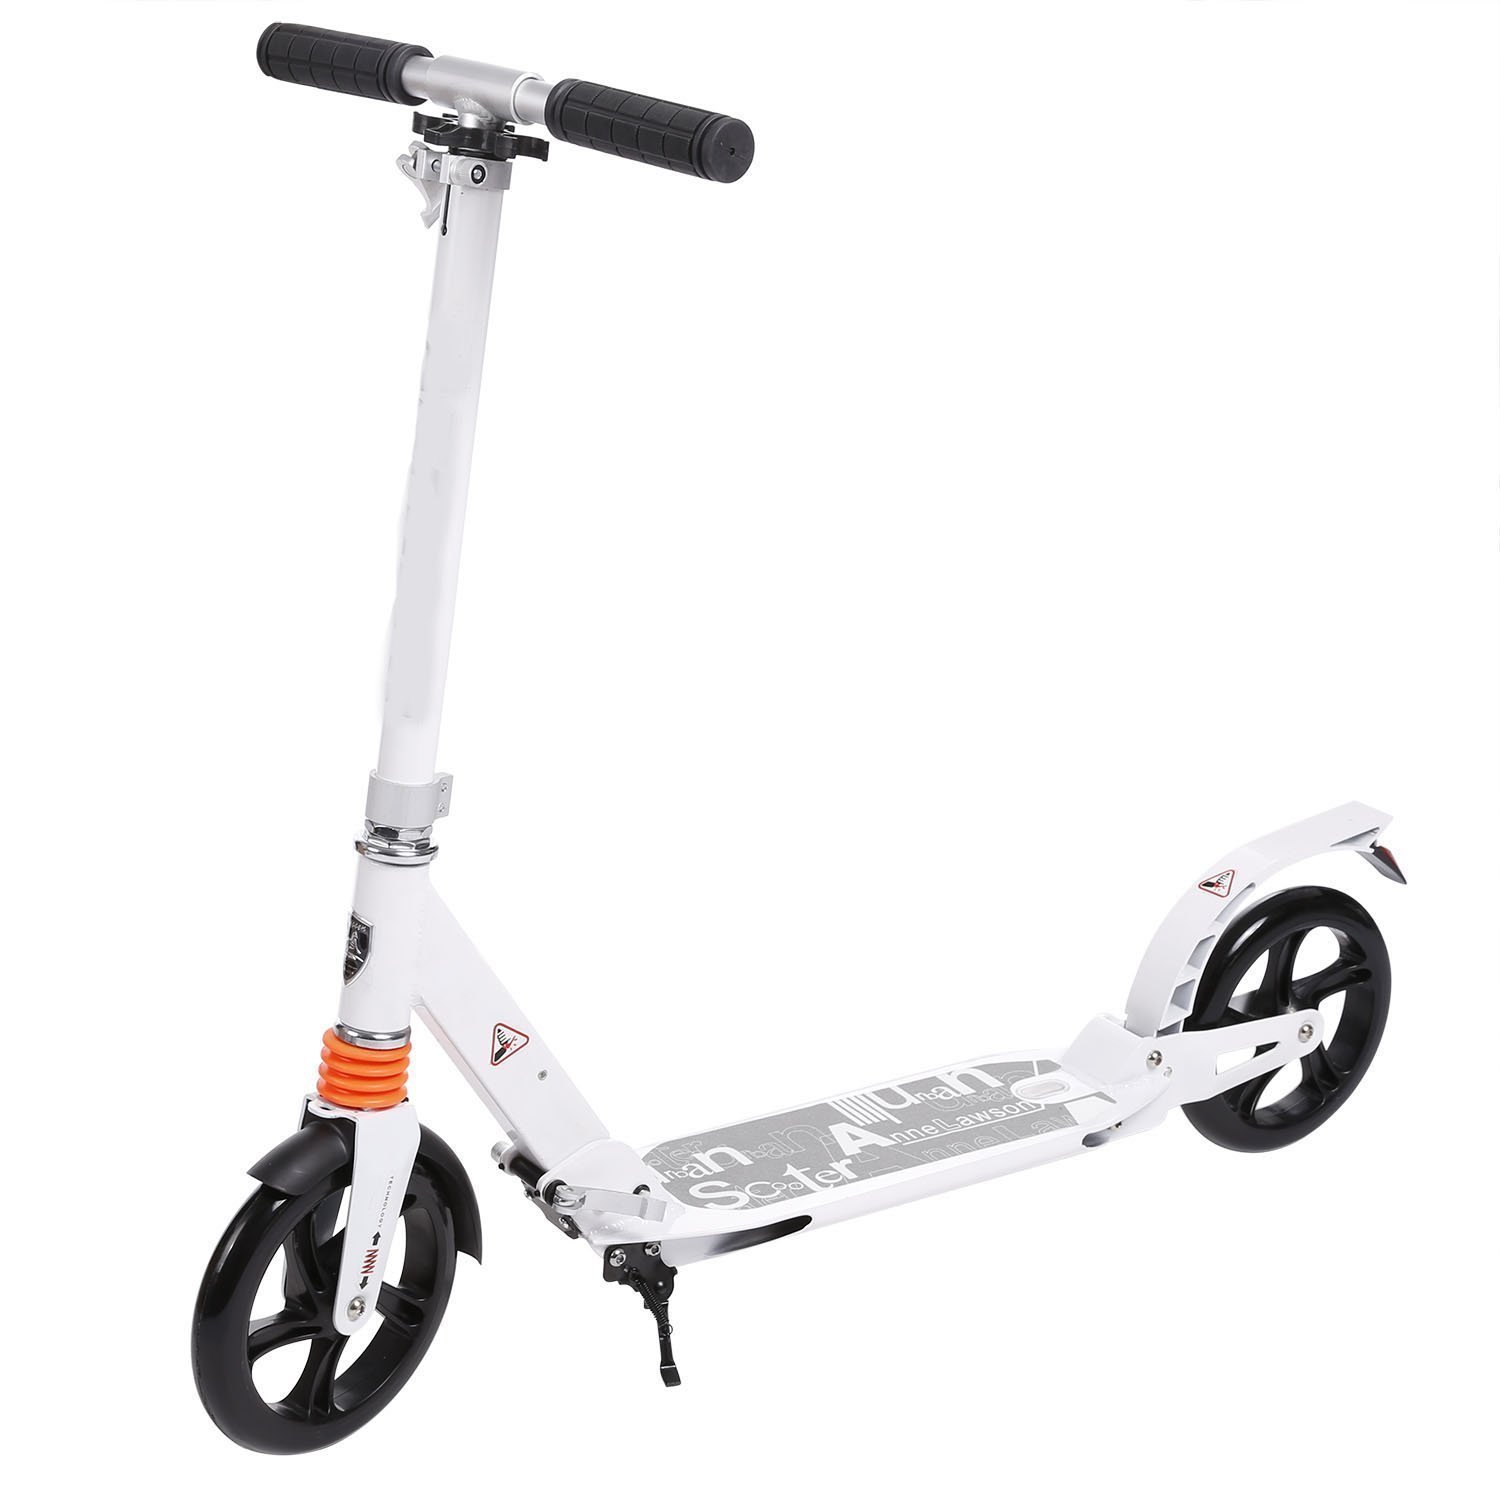 Scooter Aluminum Alloy Lightweight Height Adjustable T-Style Foldable Design Adults Teenagers-Hold To 220lb(US Stock)